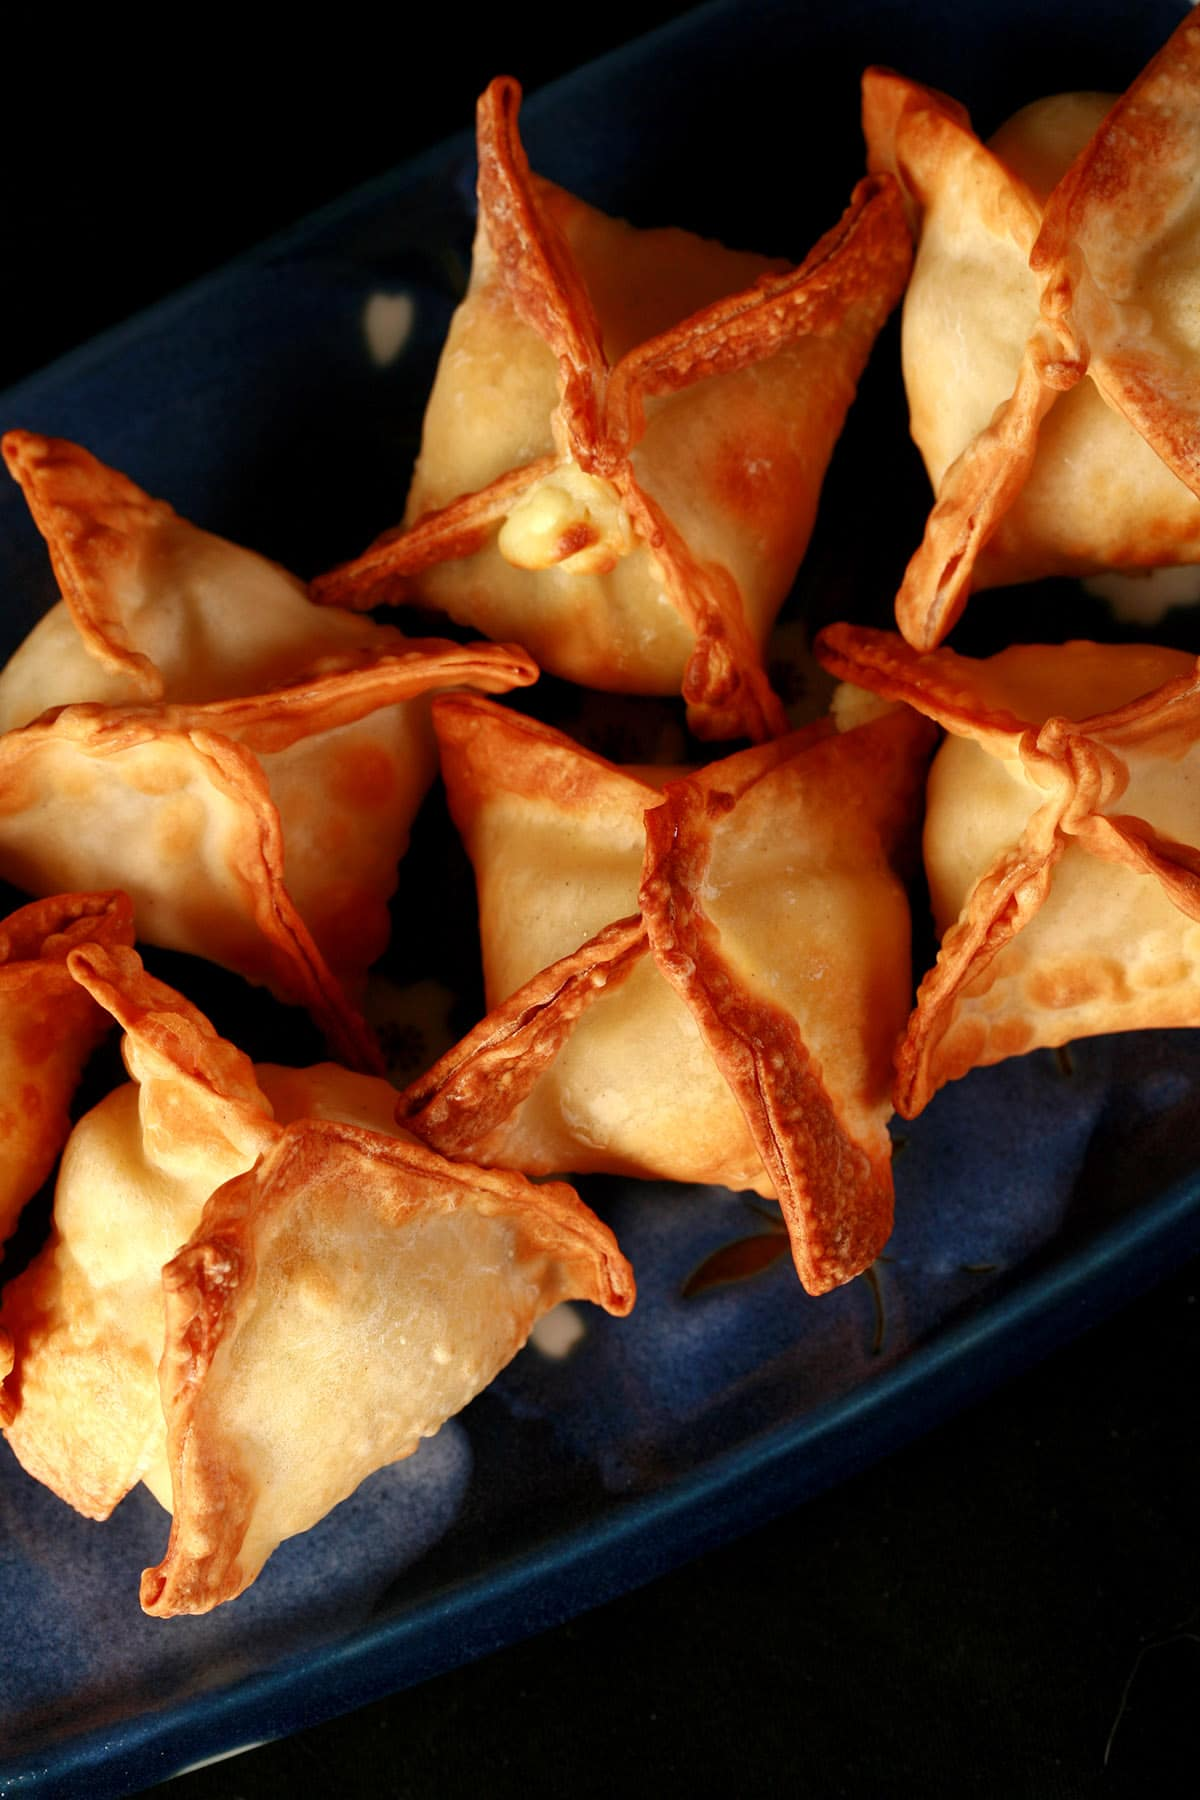 A small, blue, rectangular dish with pyramid shaped air fried cream cheese wontons on it.